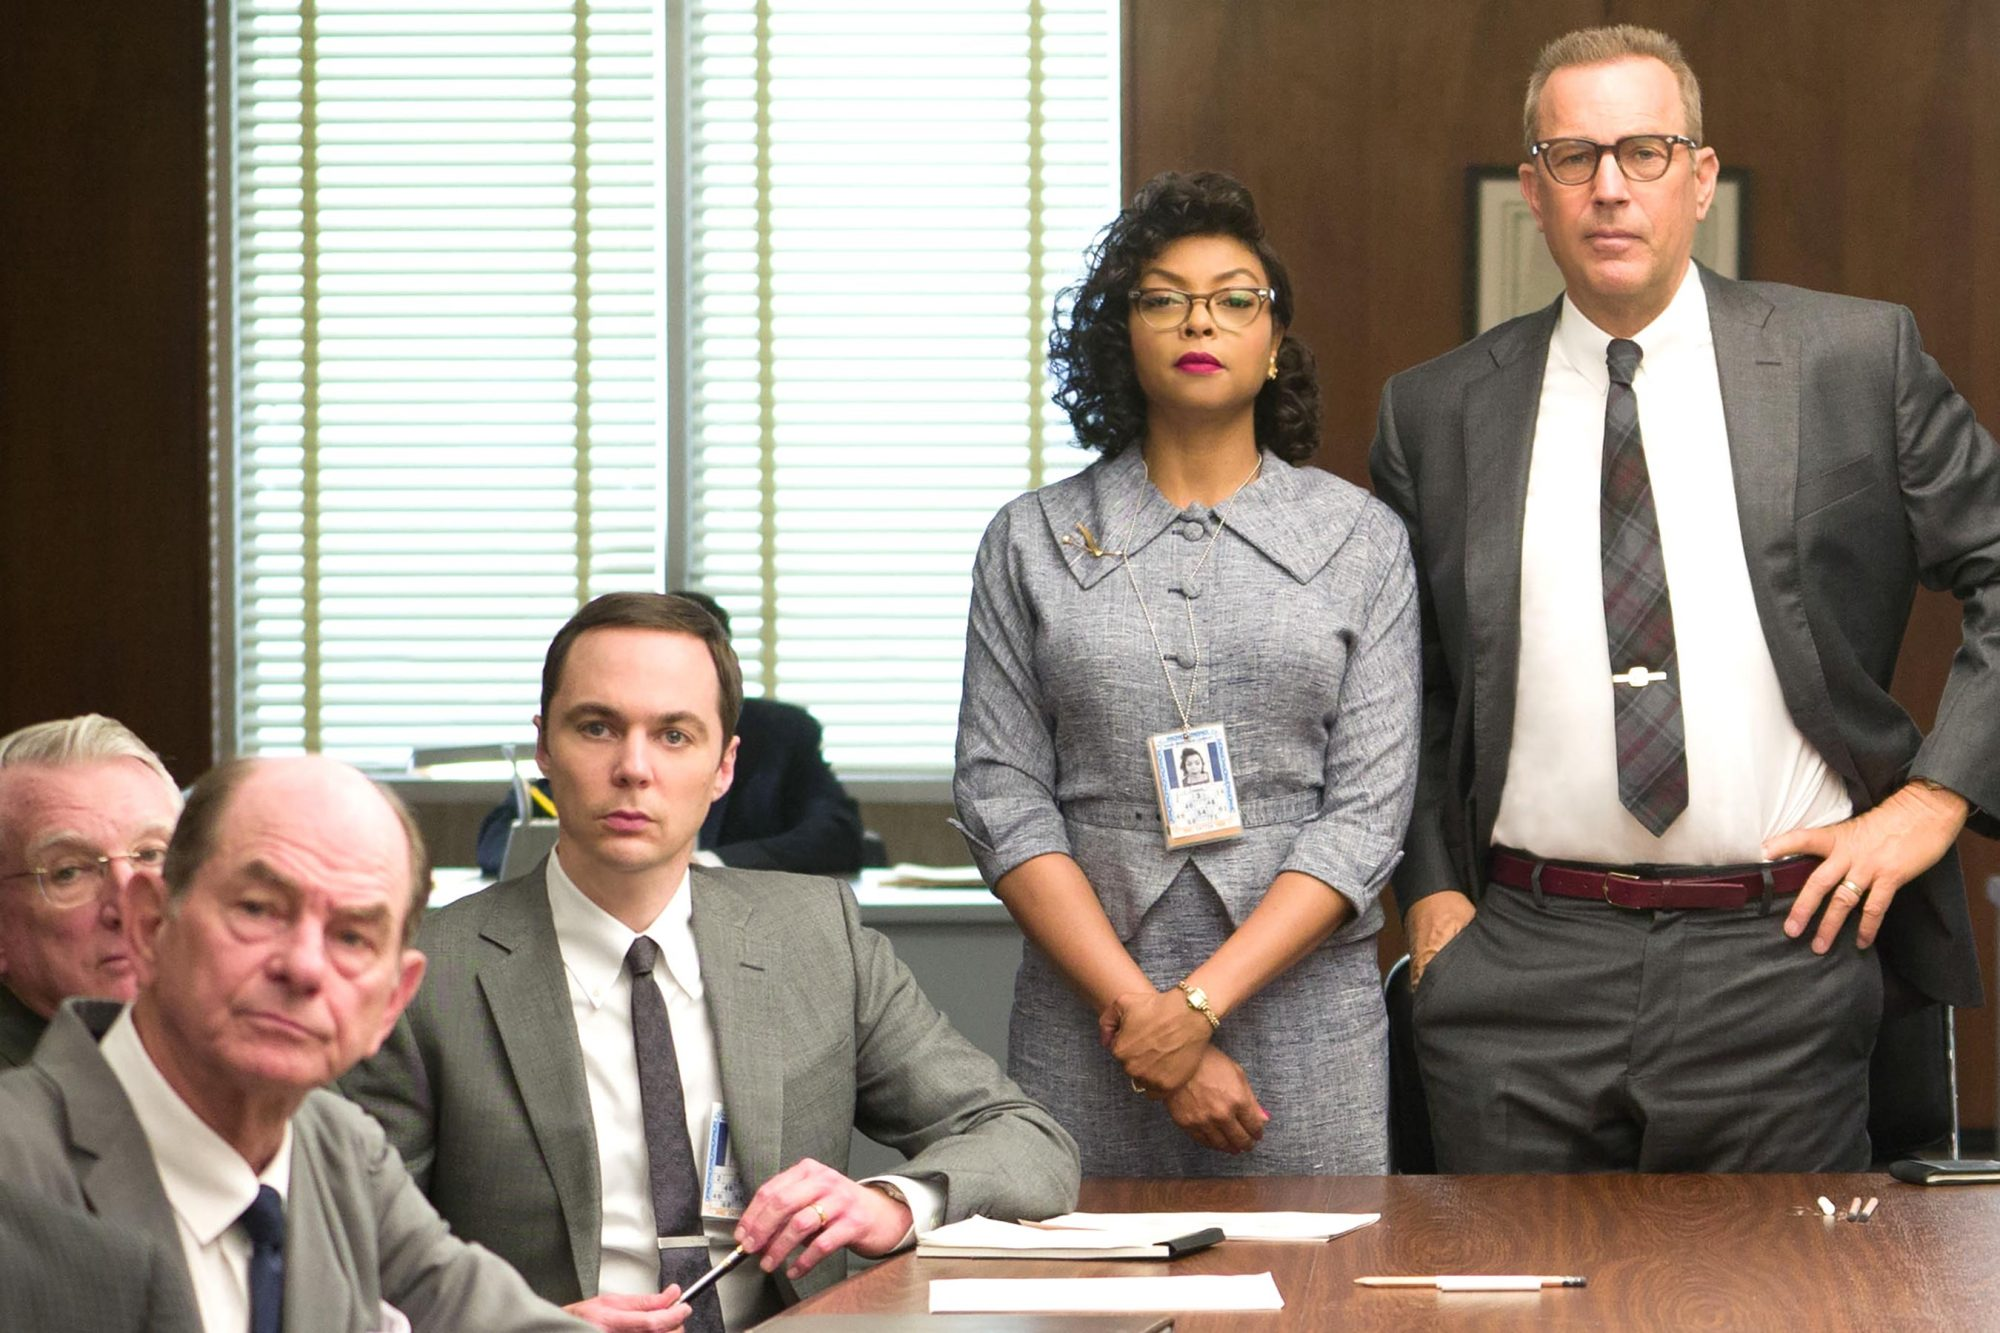 Taraji P. Henson, Jim Parsons buy out theaters for free 'Hidden Figures' screenings